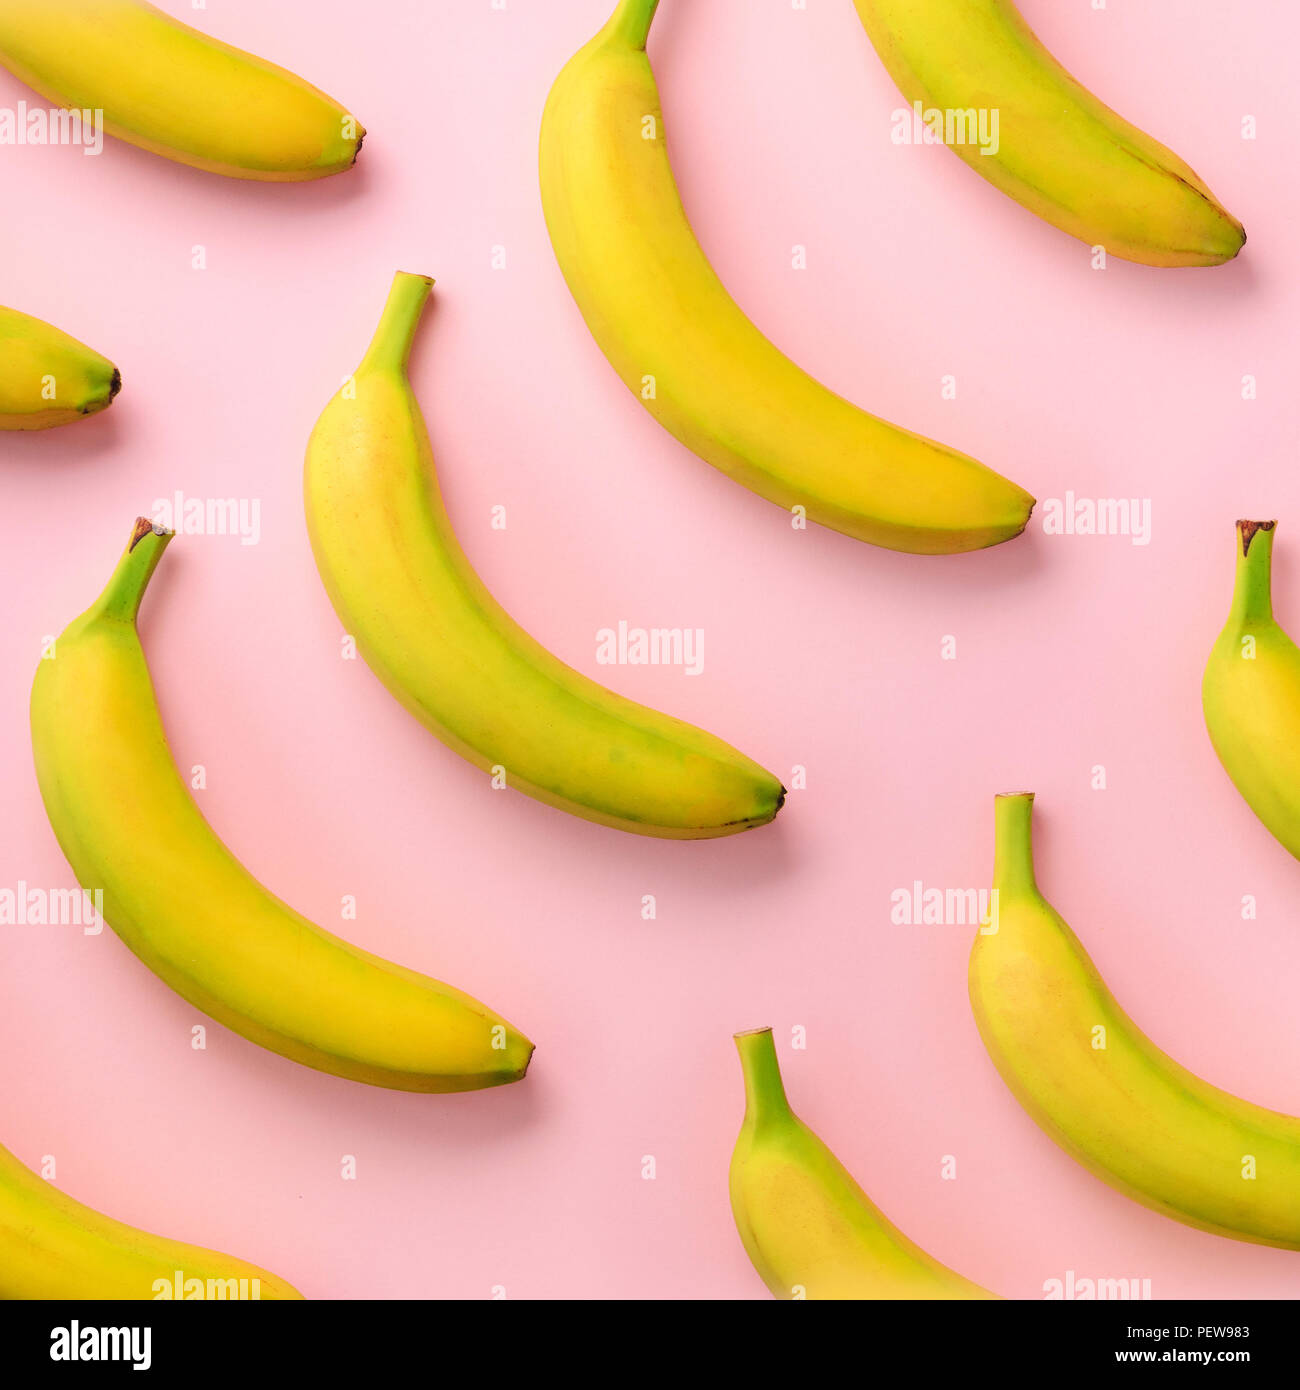 Colorful fruit pattern. Bananas over pink background. Square crop. Top view. Pop art design, creative summer concept. Minimal flat lay style - Stock Image